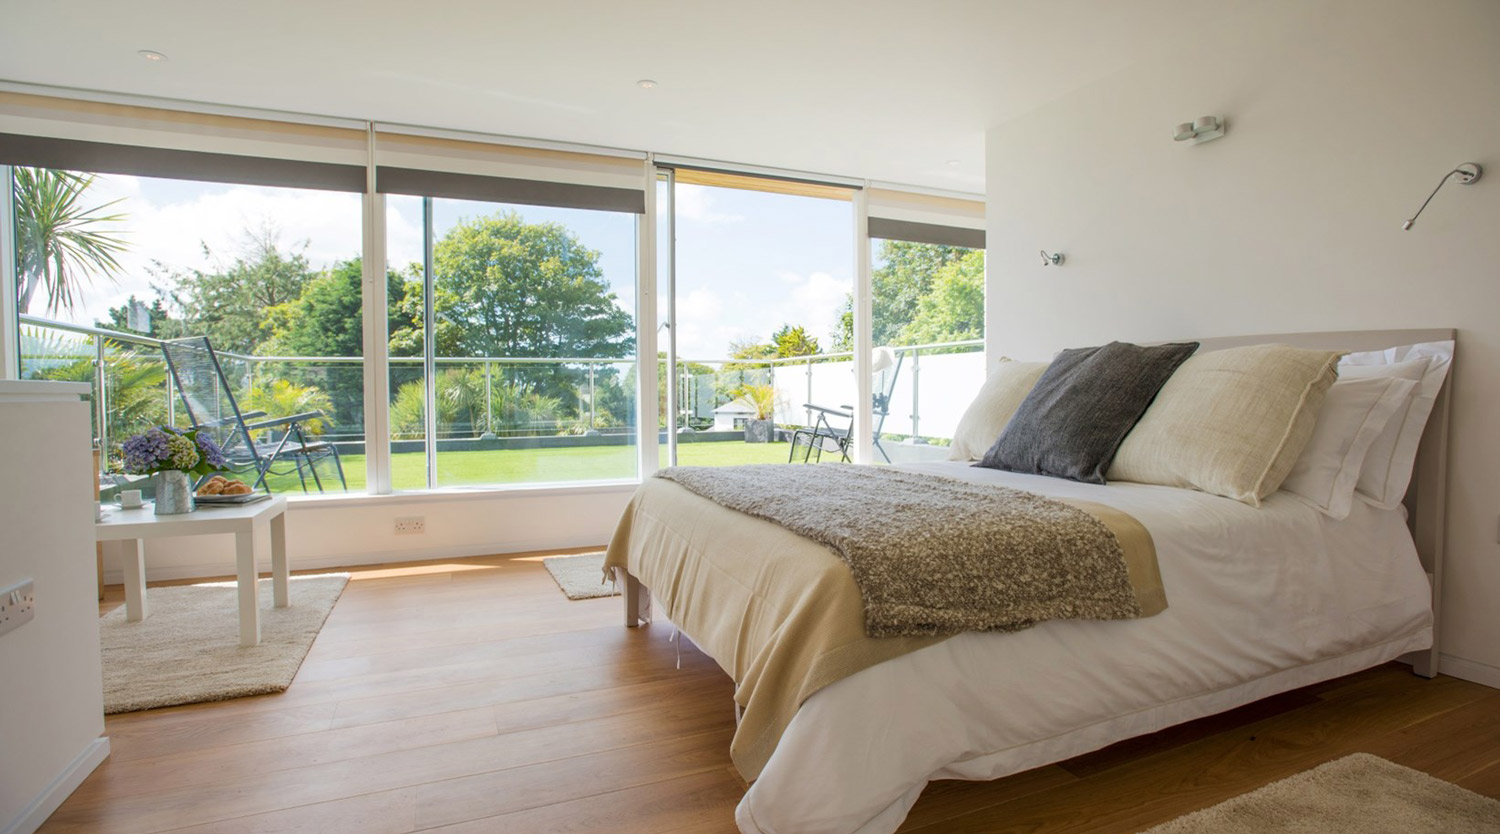 bedroom designed by architect in Cornwall